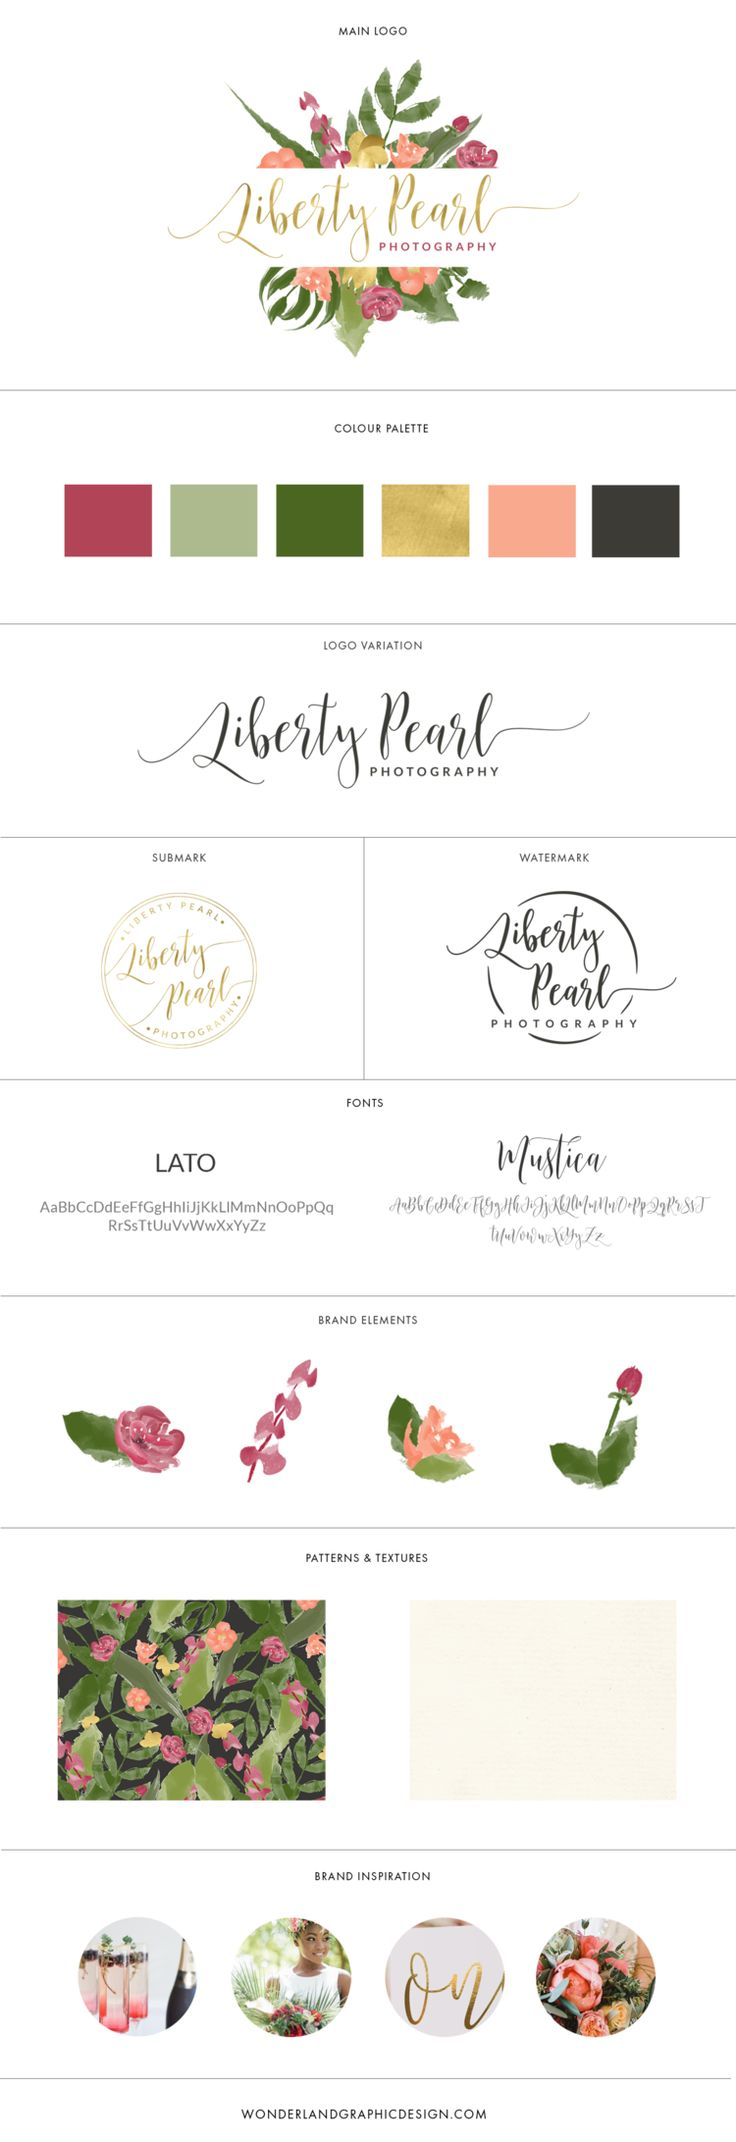 Brand board for Liberty Pearl Photographu. Brand style guide including main logo, submark, stamp, watermark, branding elements, exotic luxury feminine color palette, script font and sans serif typography,  Branding, female entrepreneurs, girlbosses, workspace pretty desk, small business owners & bloggers. Wedding photographer inspiration.